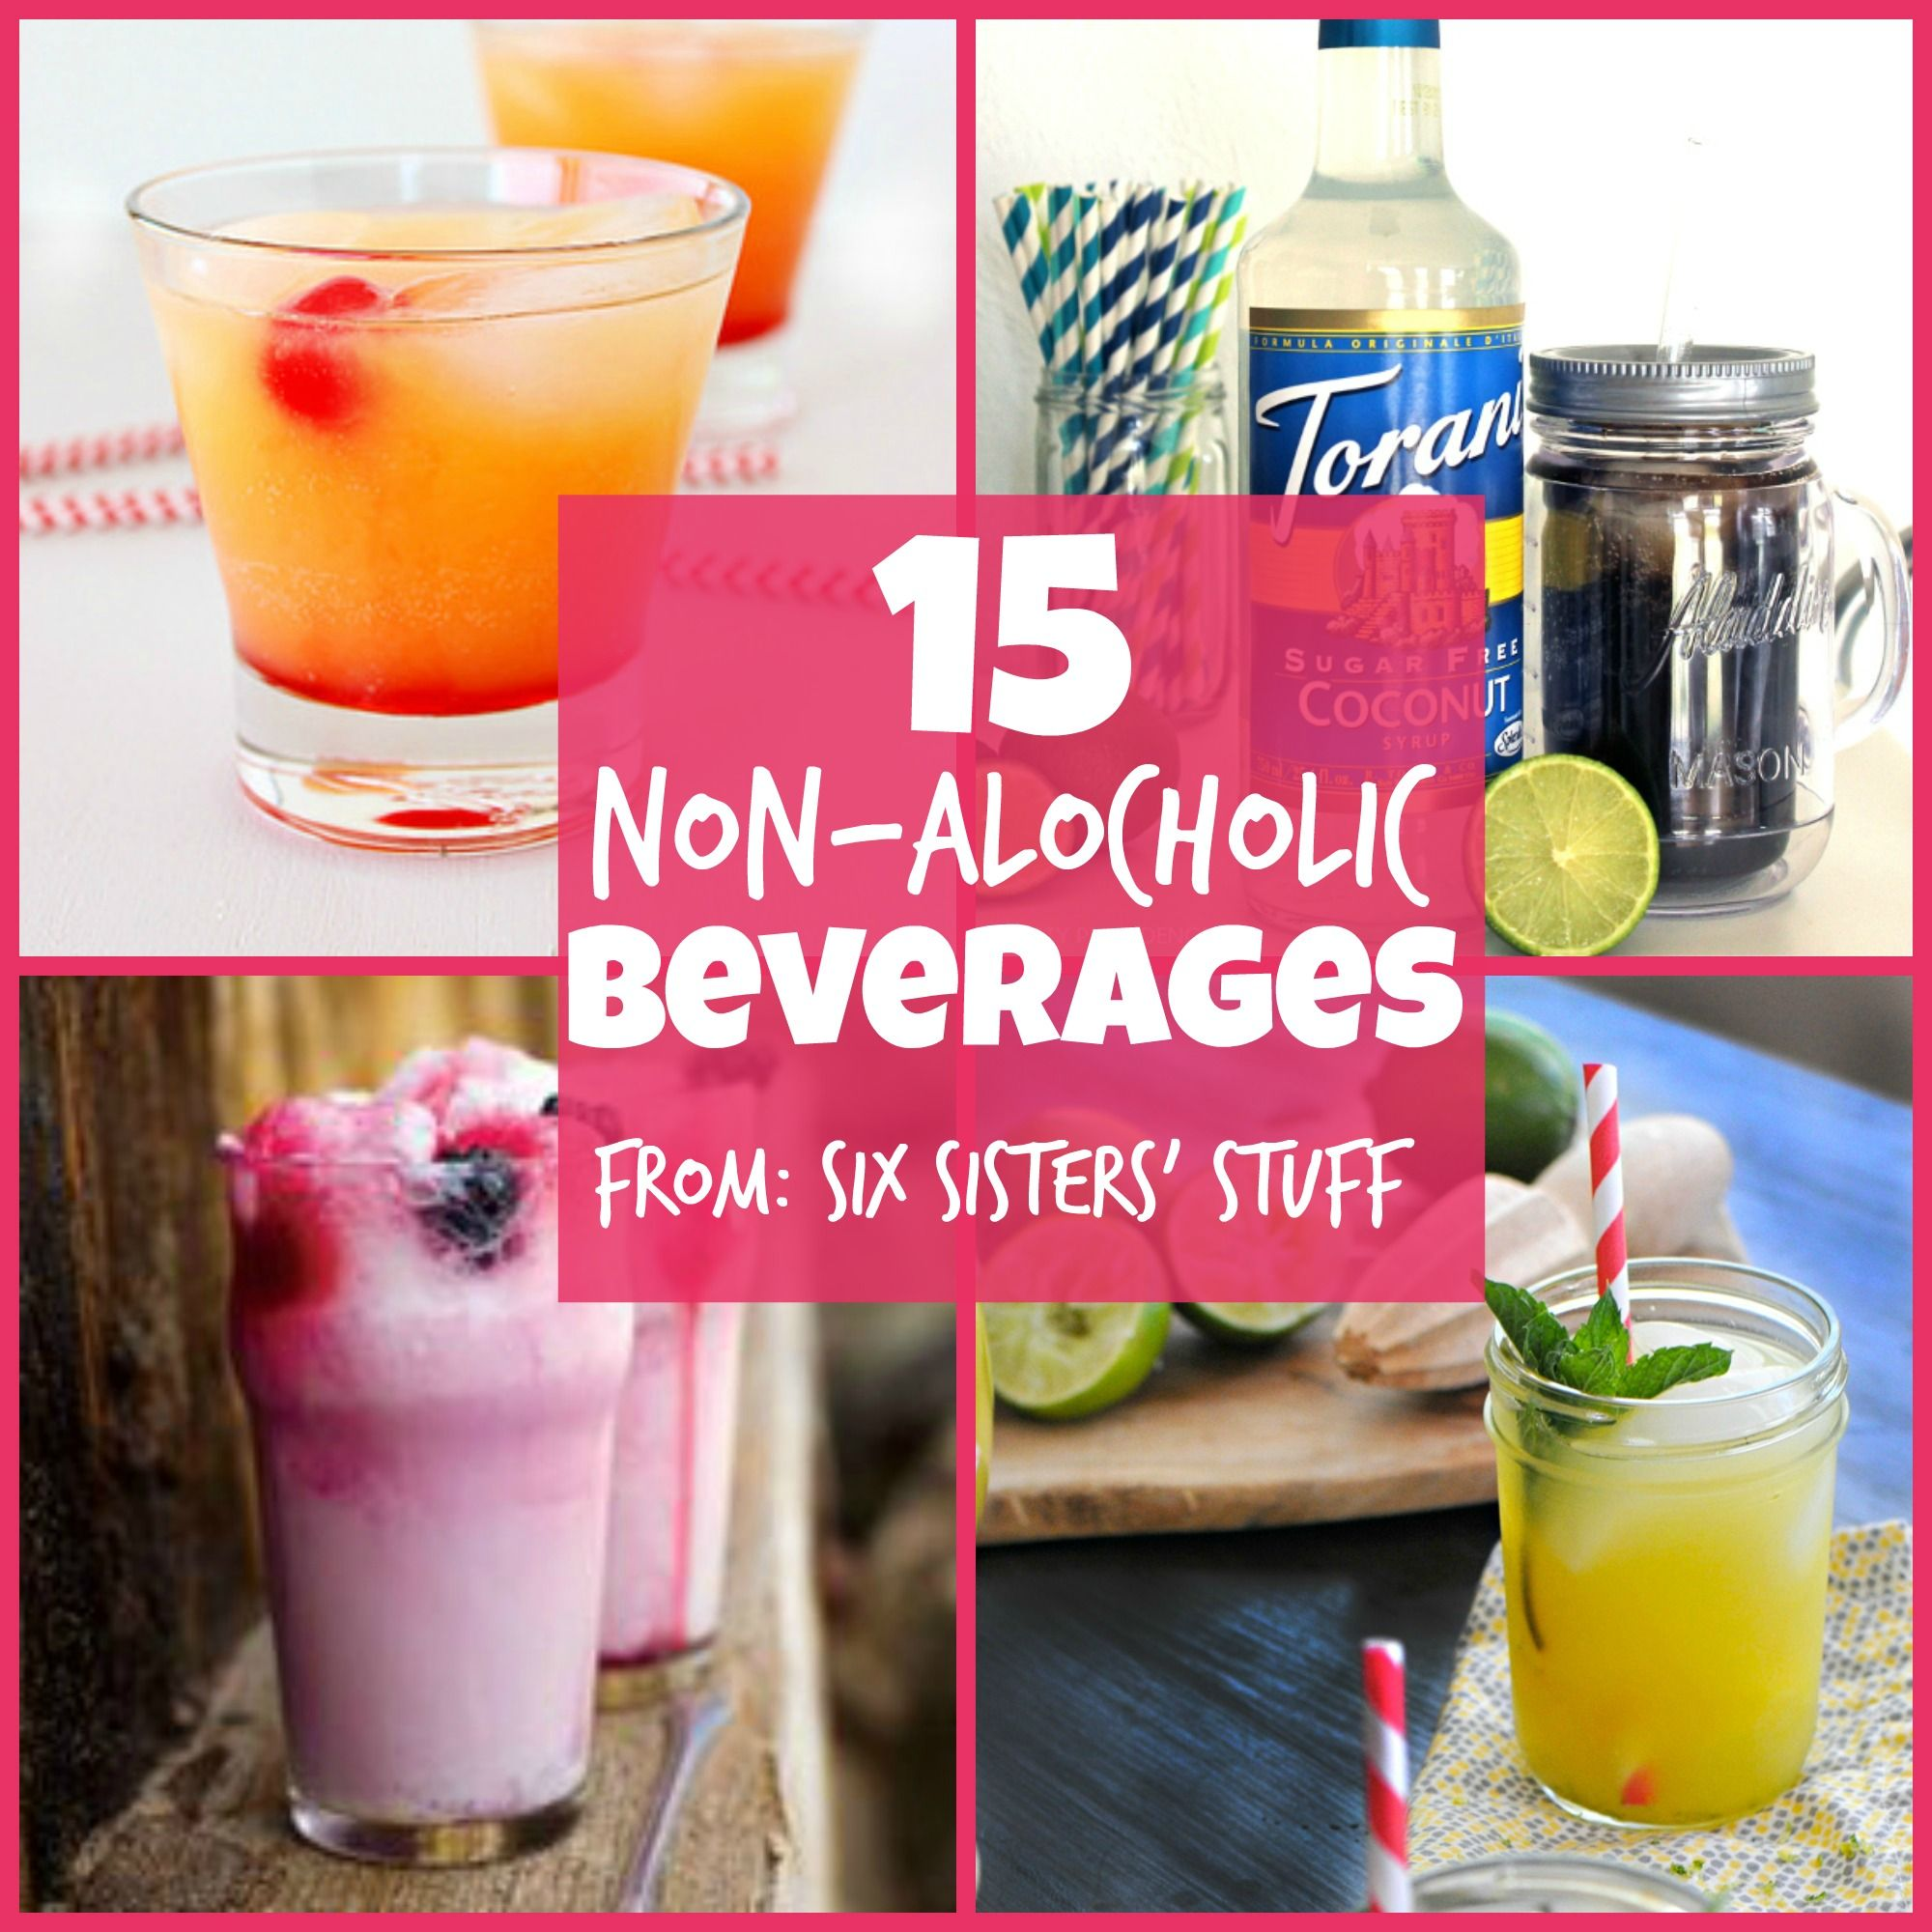 We Love Making Fun Drinks For New Years! These 15 Non